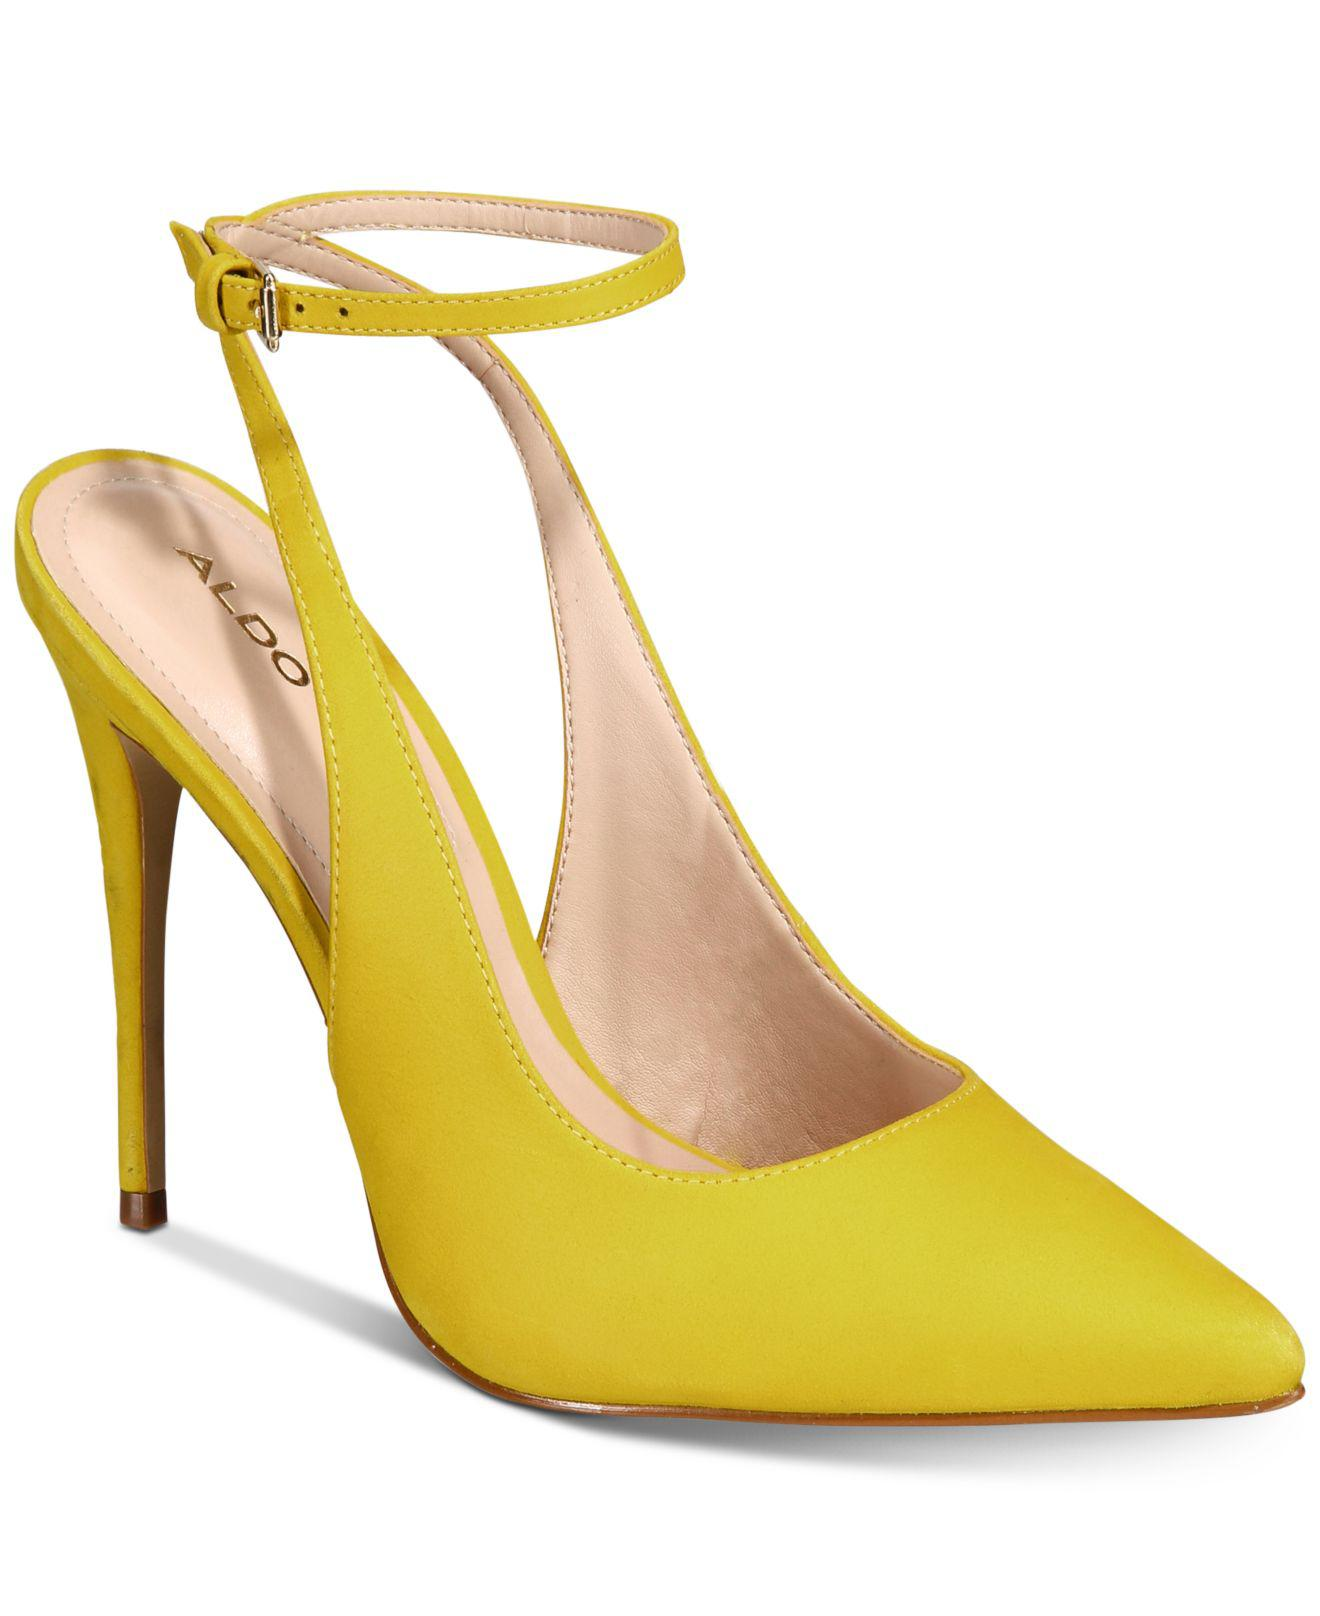 d575ae9c8a60 Lyst - ALDO Arobeth Pumps in Yellow